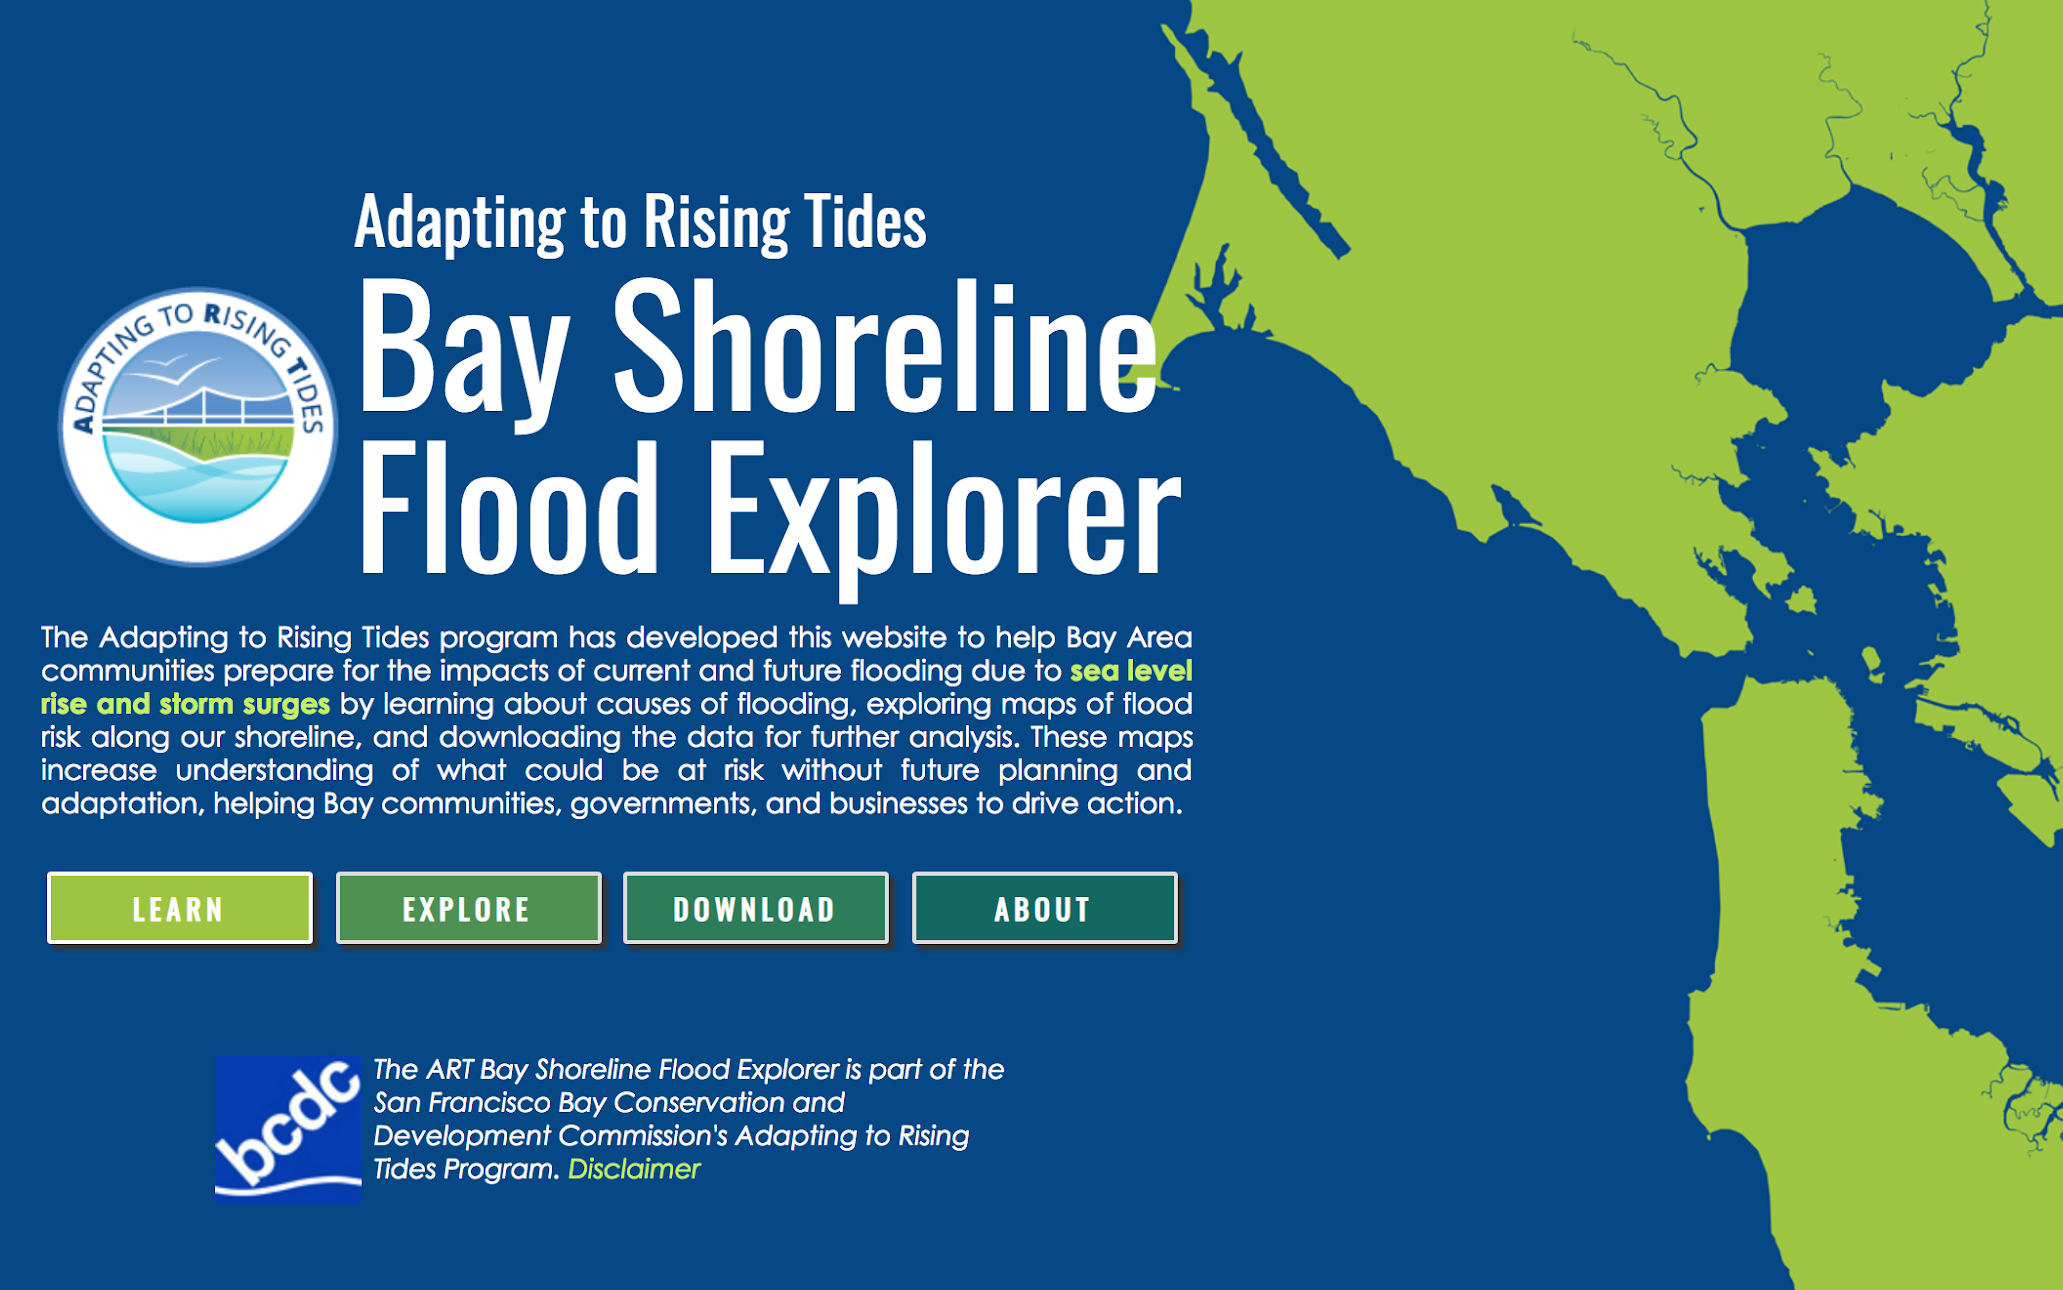 The Bay Shoreline Flood Explorer website borrowed some of the intuitive user-interface elements of the NOAA Sea Level Rise Viewer